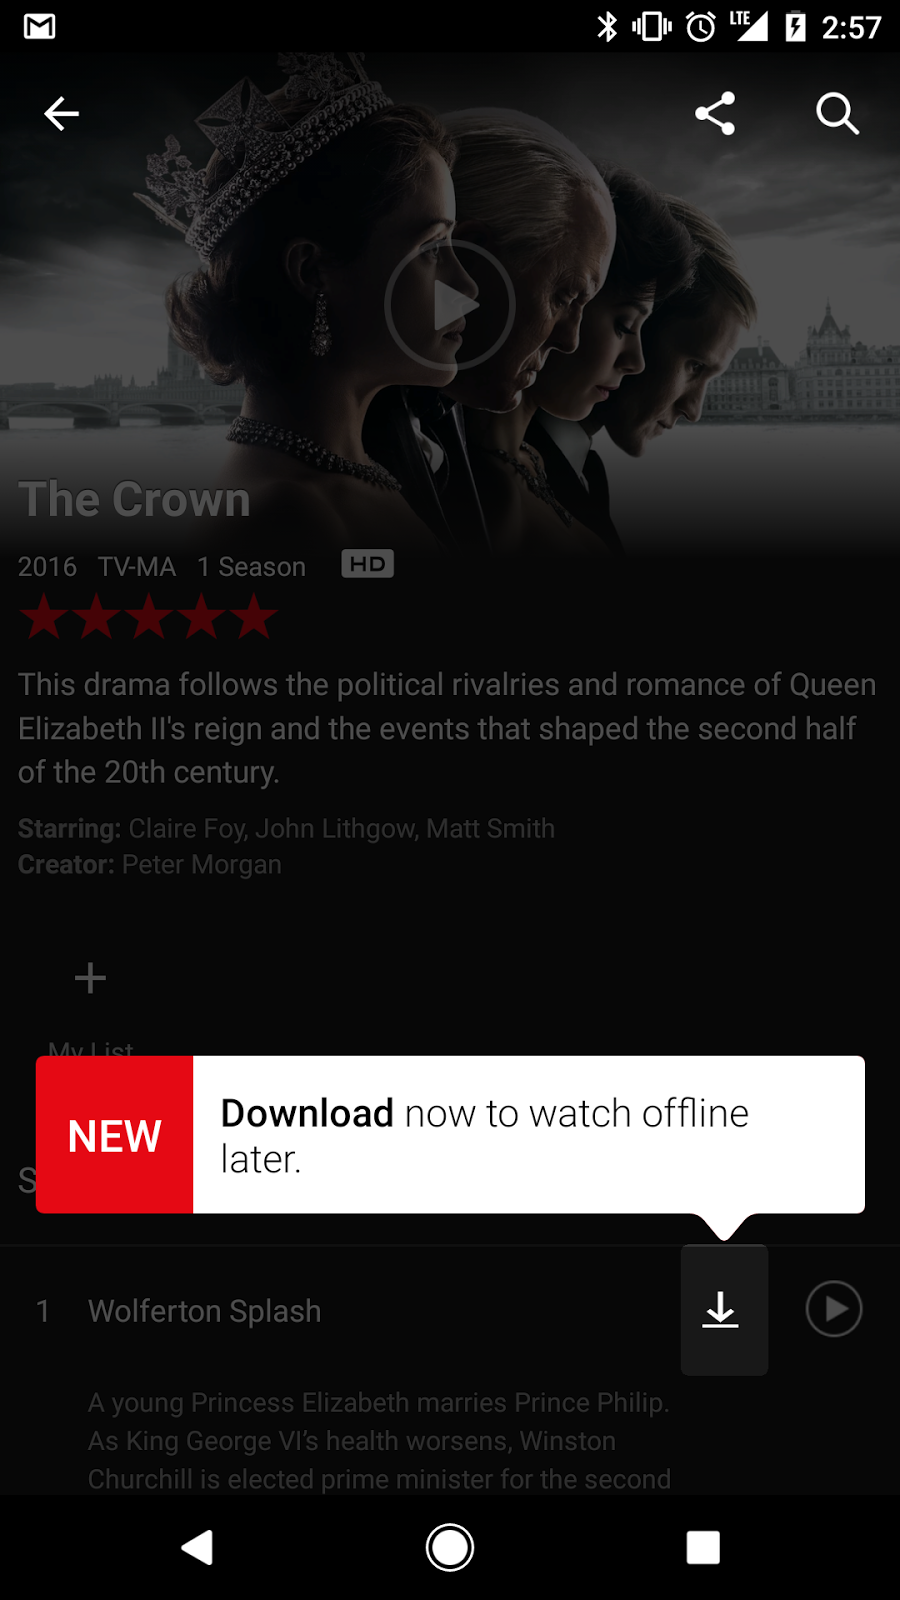 Netflix enables downloading of shows and movies to watch offline on iOS and Android